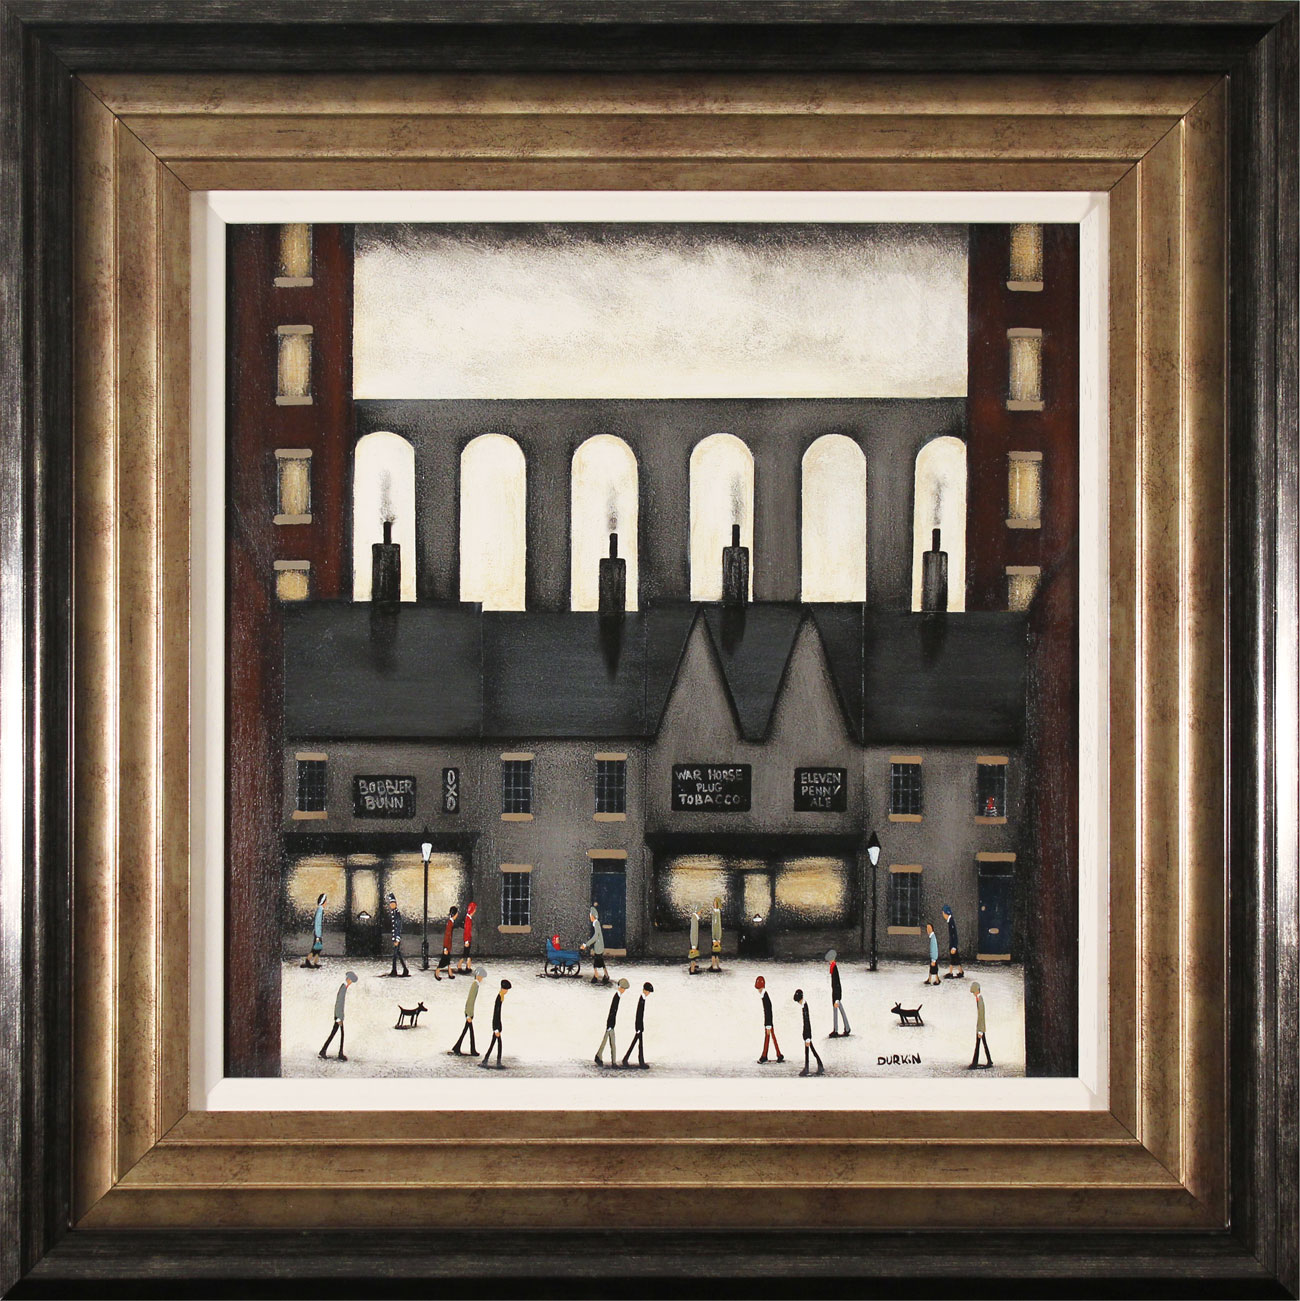 Sean Durkin, Original oil painting on panel, The Four Chimneys. Click to enlarge